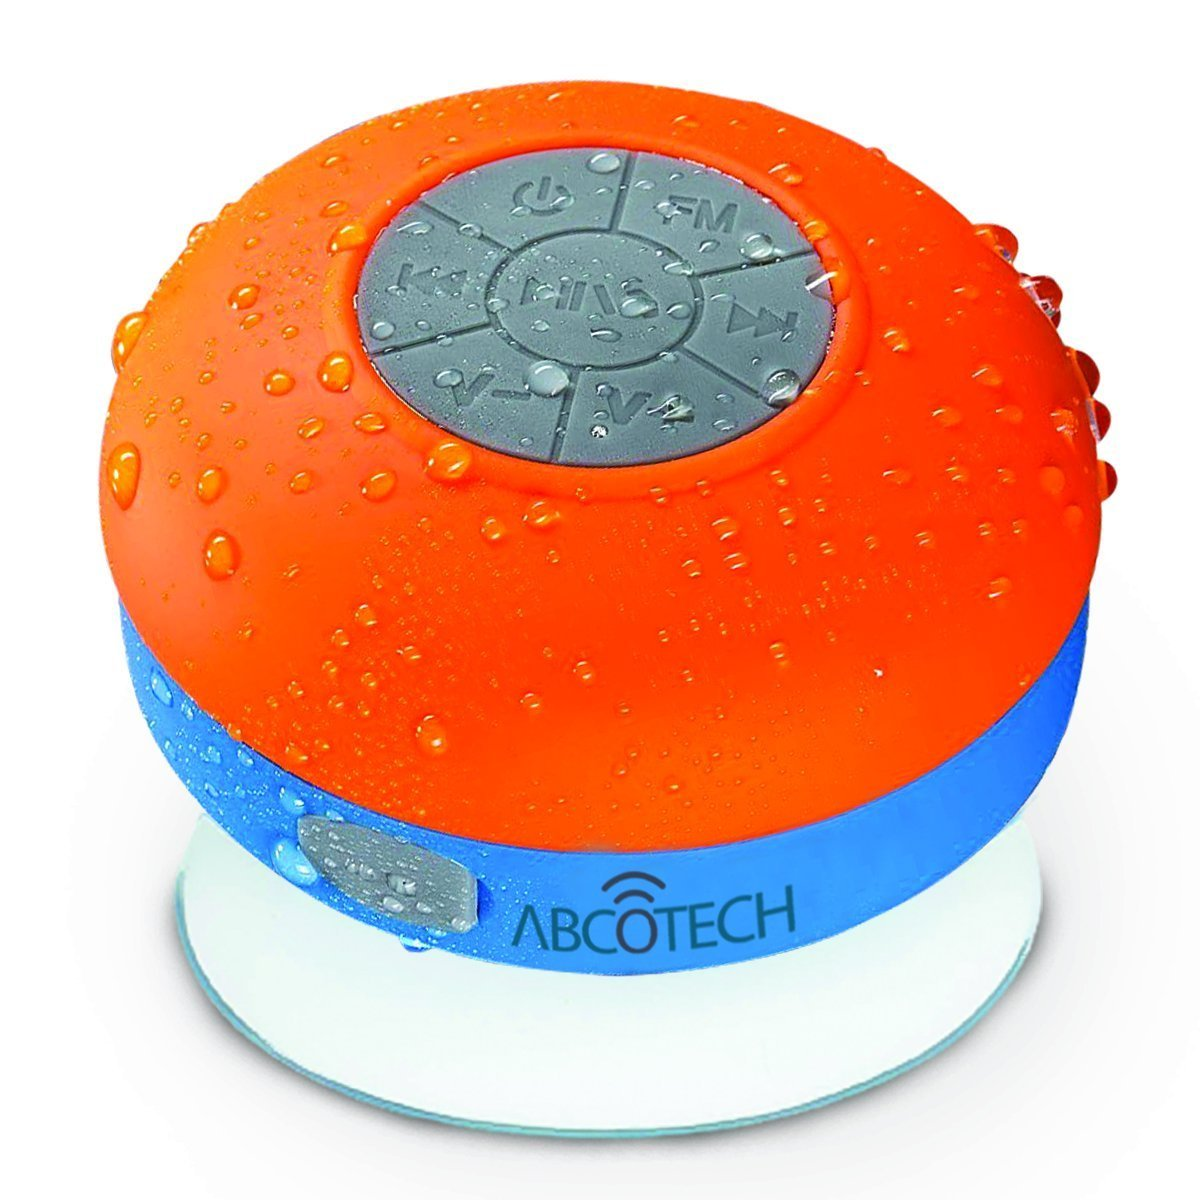 Superieur Amazon.com: Bluetooth Shower Speaker U2013 FM RADIO U2013 Water Resistant U2013  Wireless And Hands Free Speaker Phone With Suction Cup U2013 Auto Pairing  Feature ...